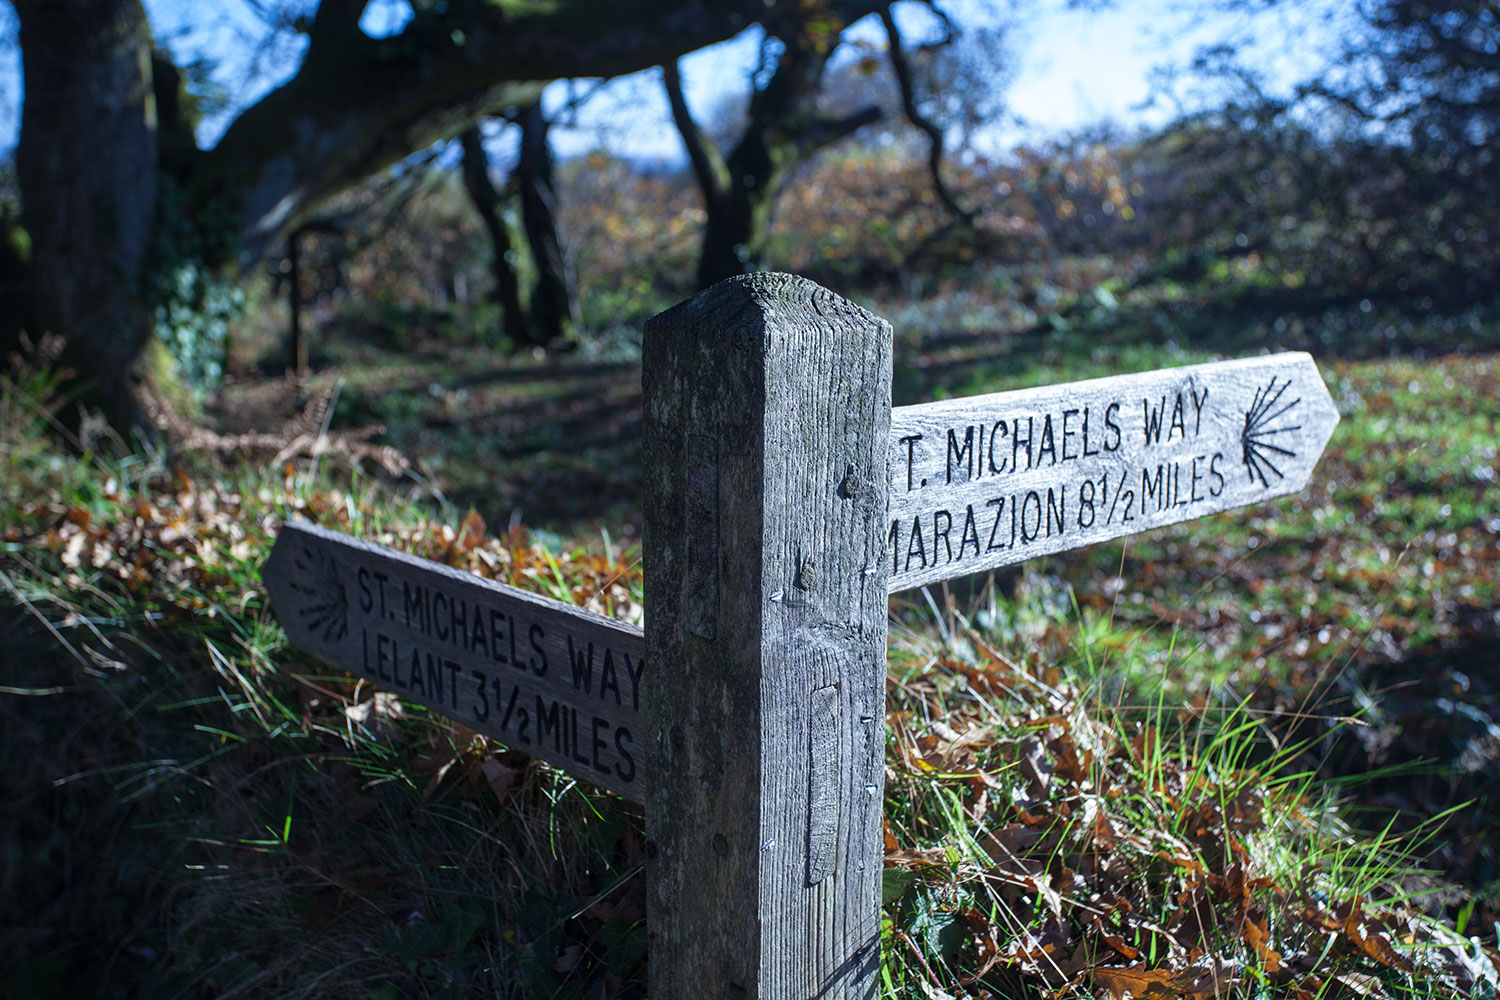 St Michaels Way Np 1500